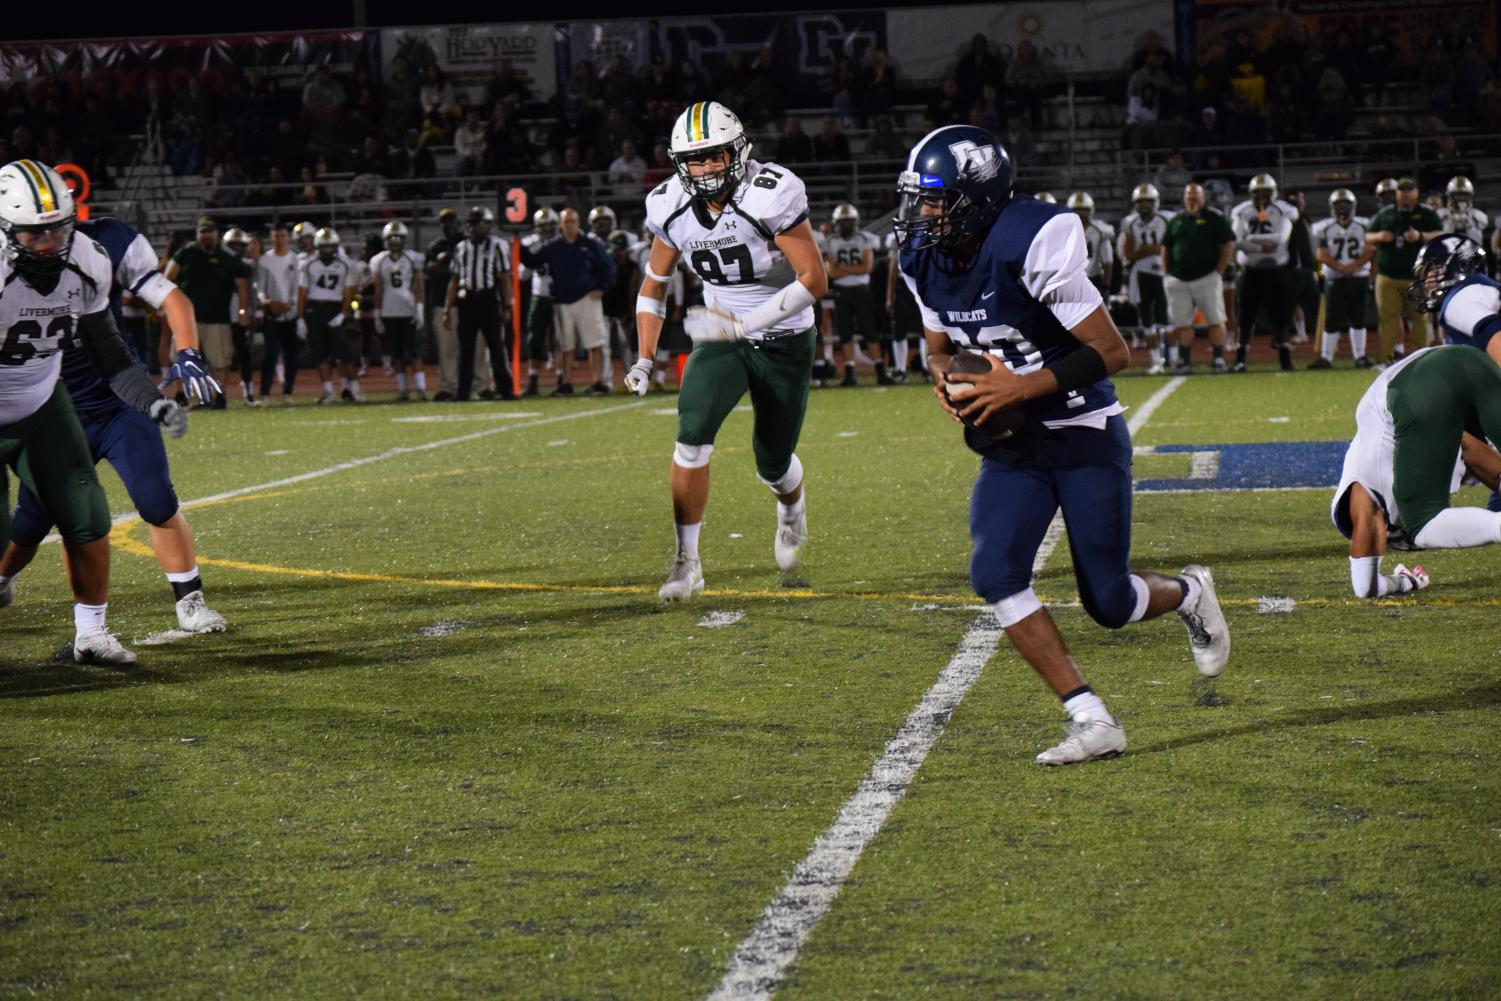 Junior Steven Bratcher rushes for the first down